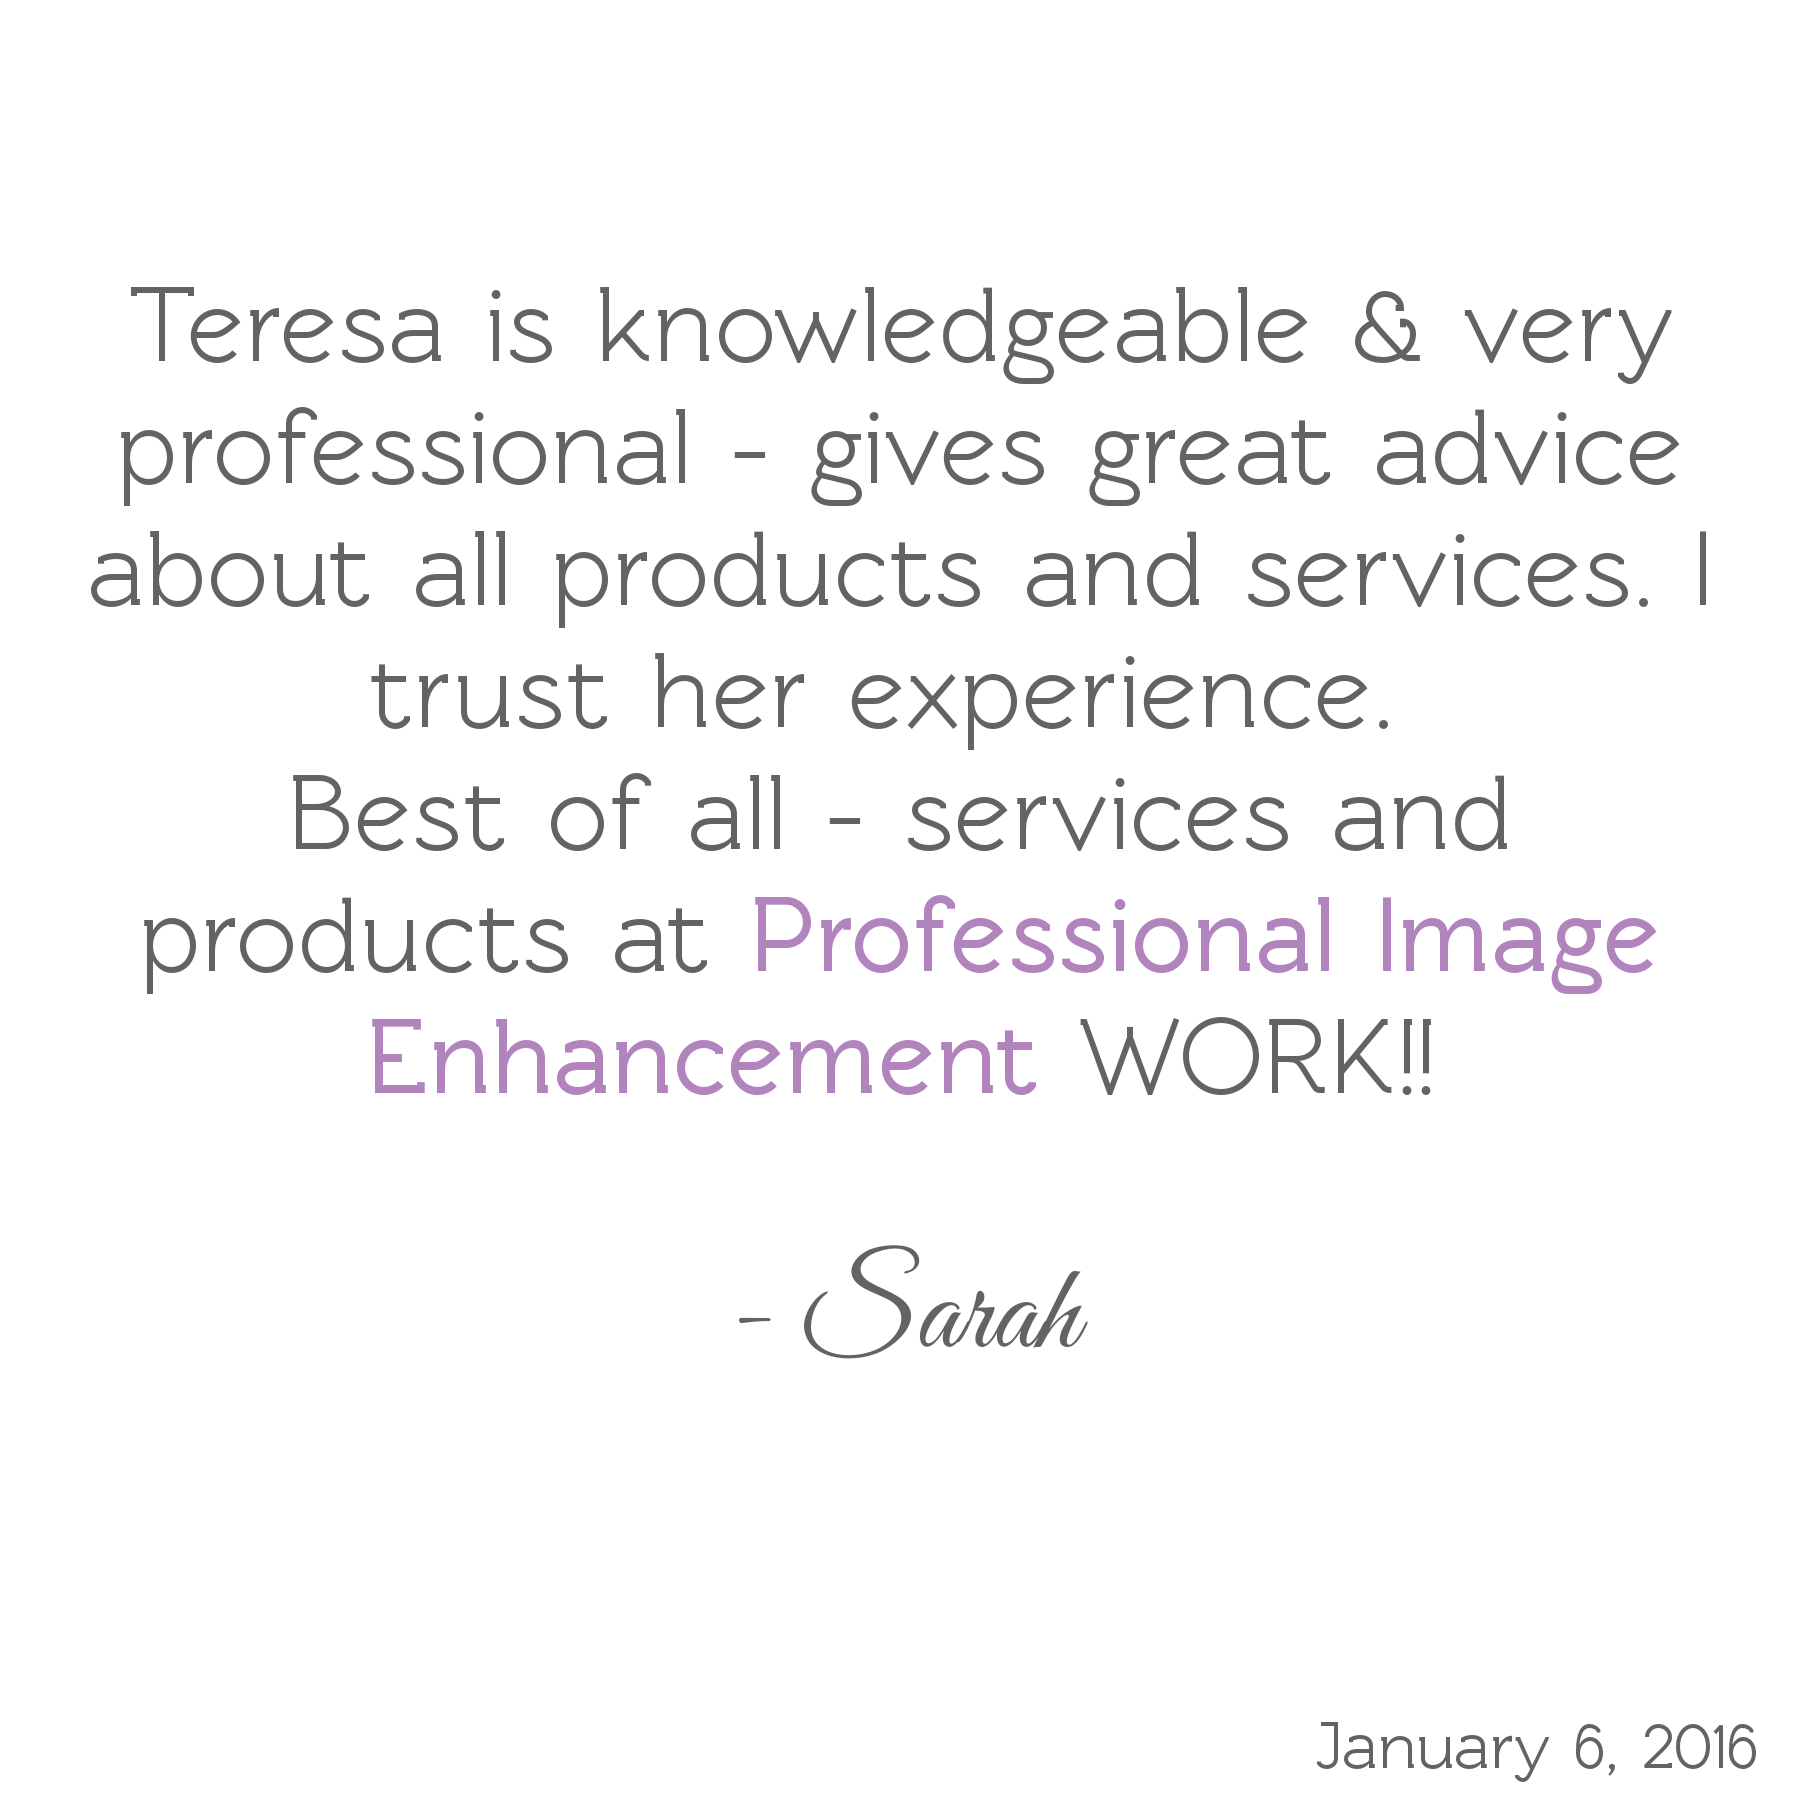 Teresa is knowledgeable & very professional - gives great advice about all products & services. I trust her experience. Best of all, services & products at Professional Image Enhancement WORK! -Sarah